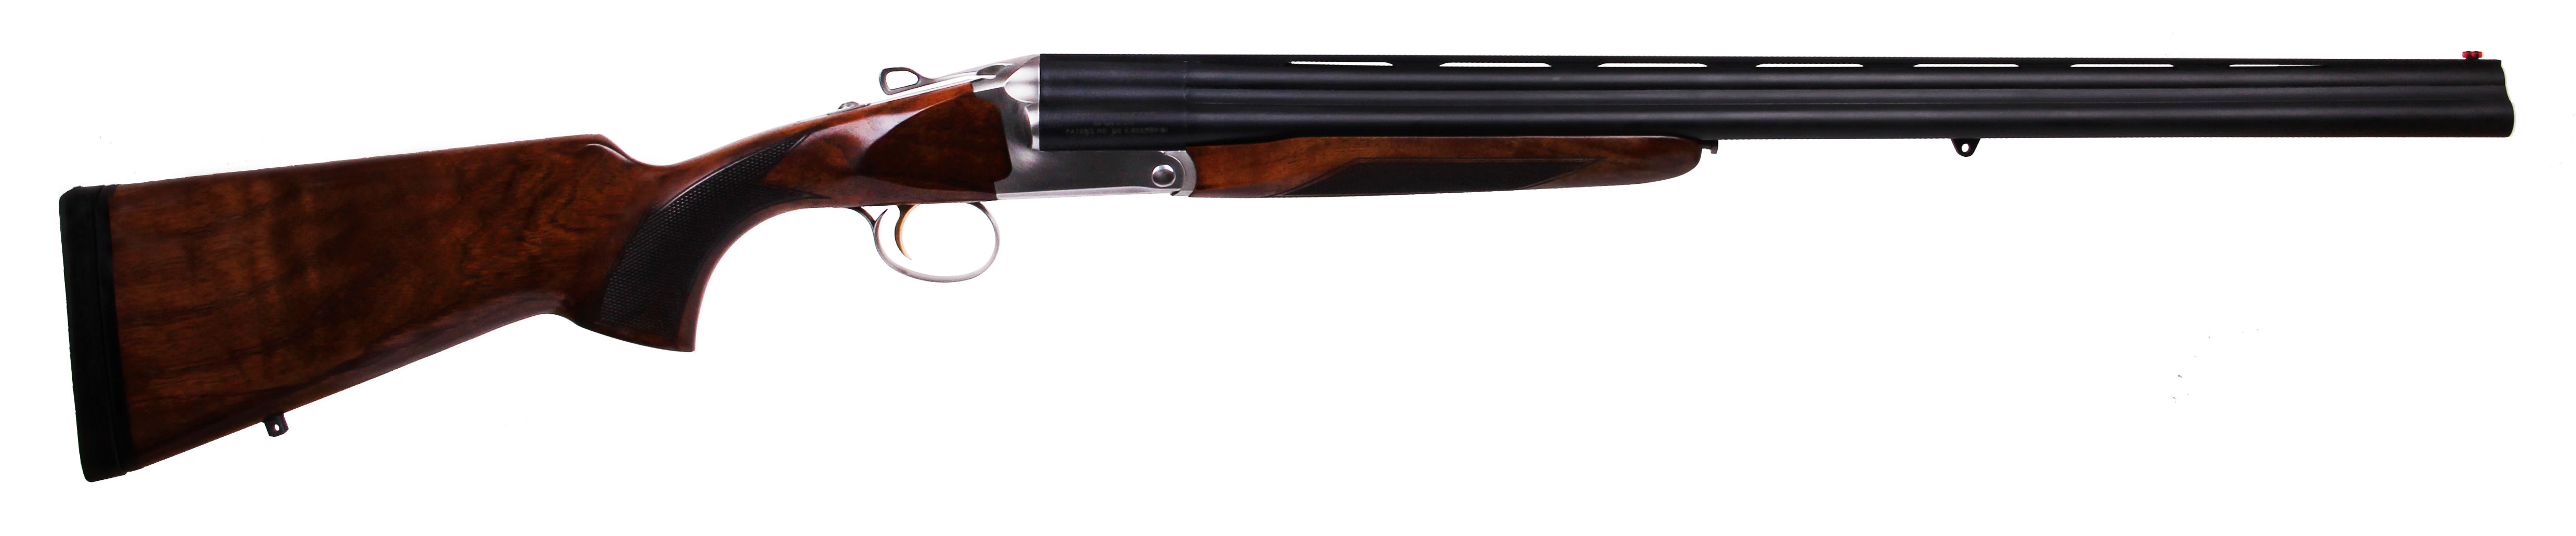 Charles Daly Triple Crown 28 Gauge